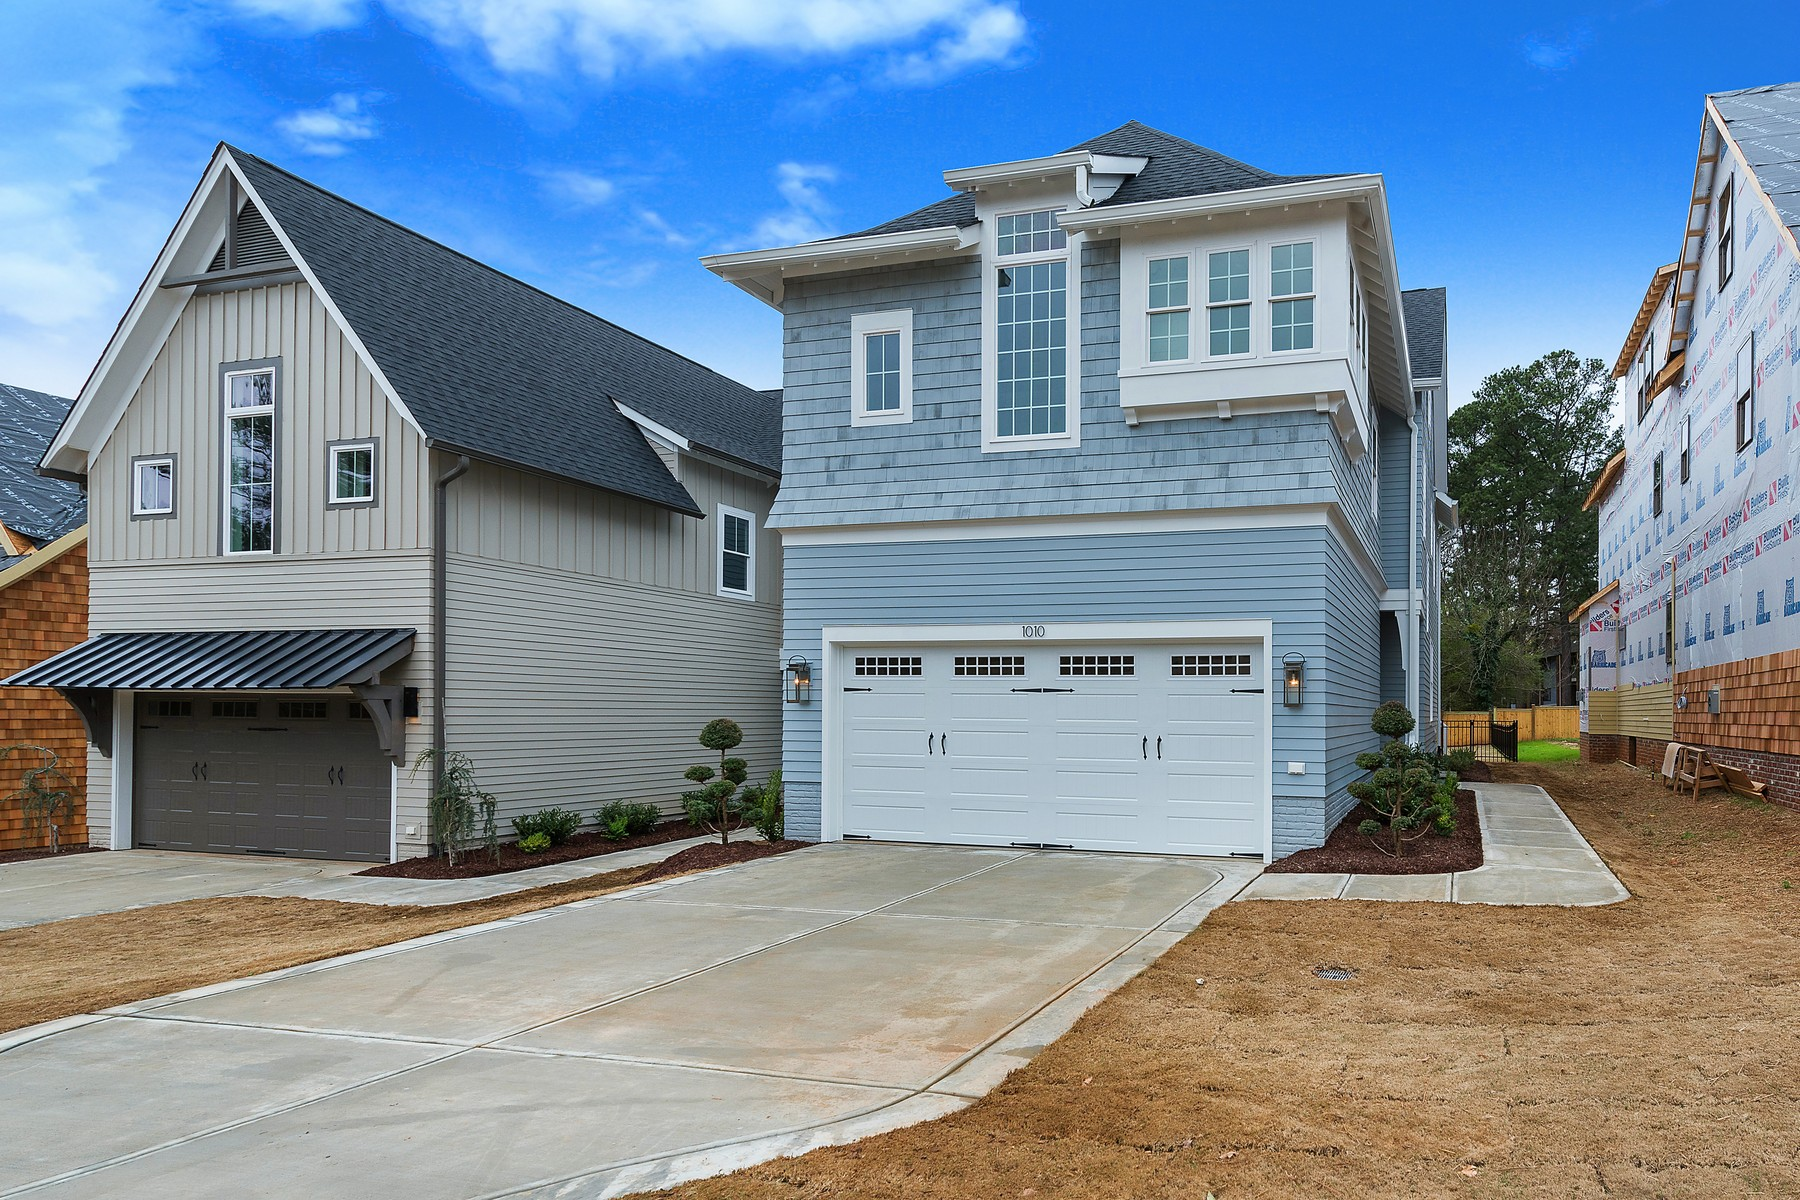 واحد منزل الأسرة للـ Sale في Schaub New Construction 1010 Schaub Drive, Raleigh, North Carolina, 27606 United Statesفي/حول: Durham, Chapel Hill, Cary